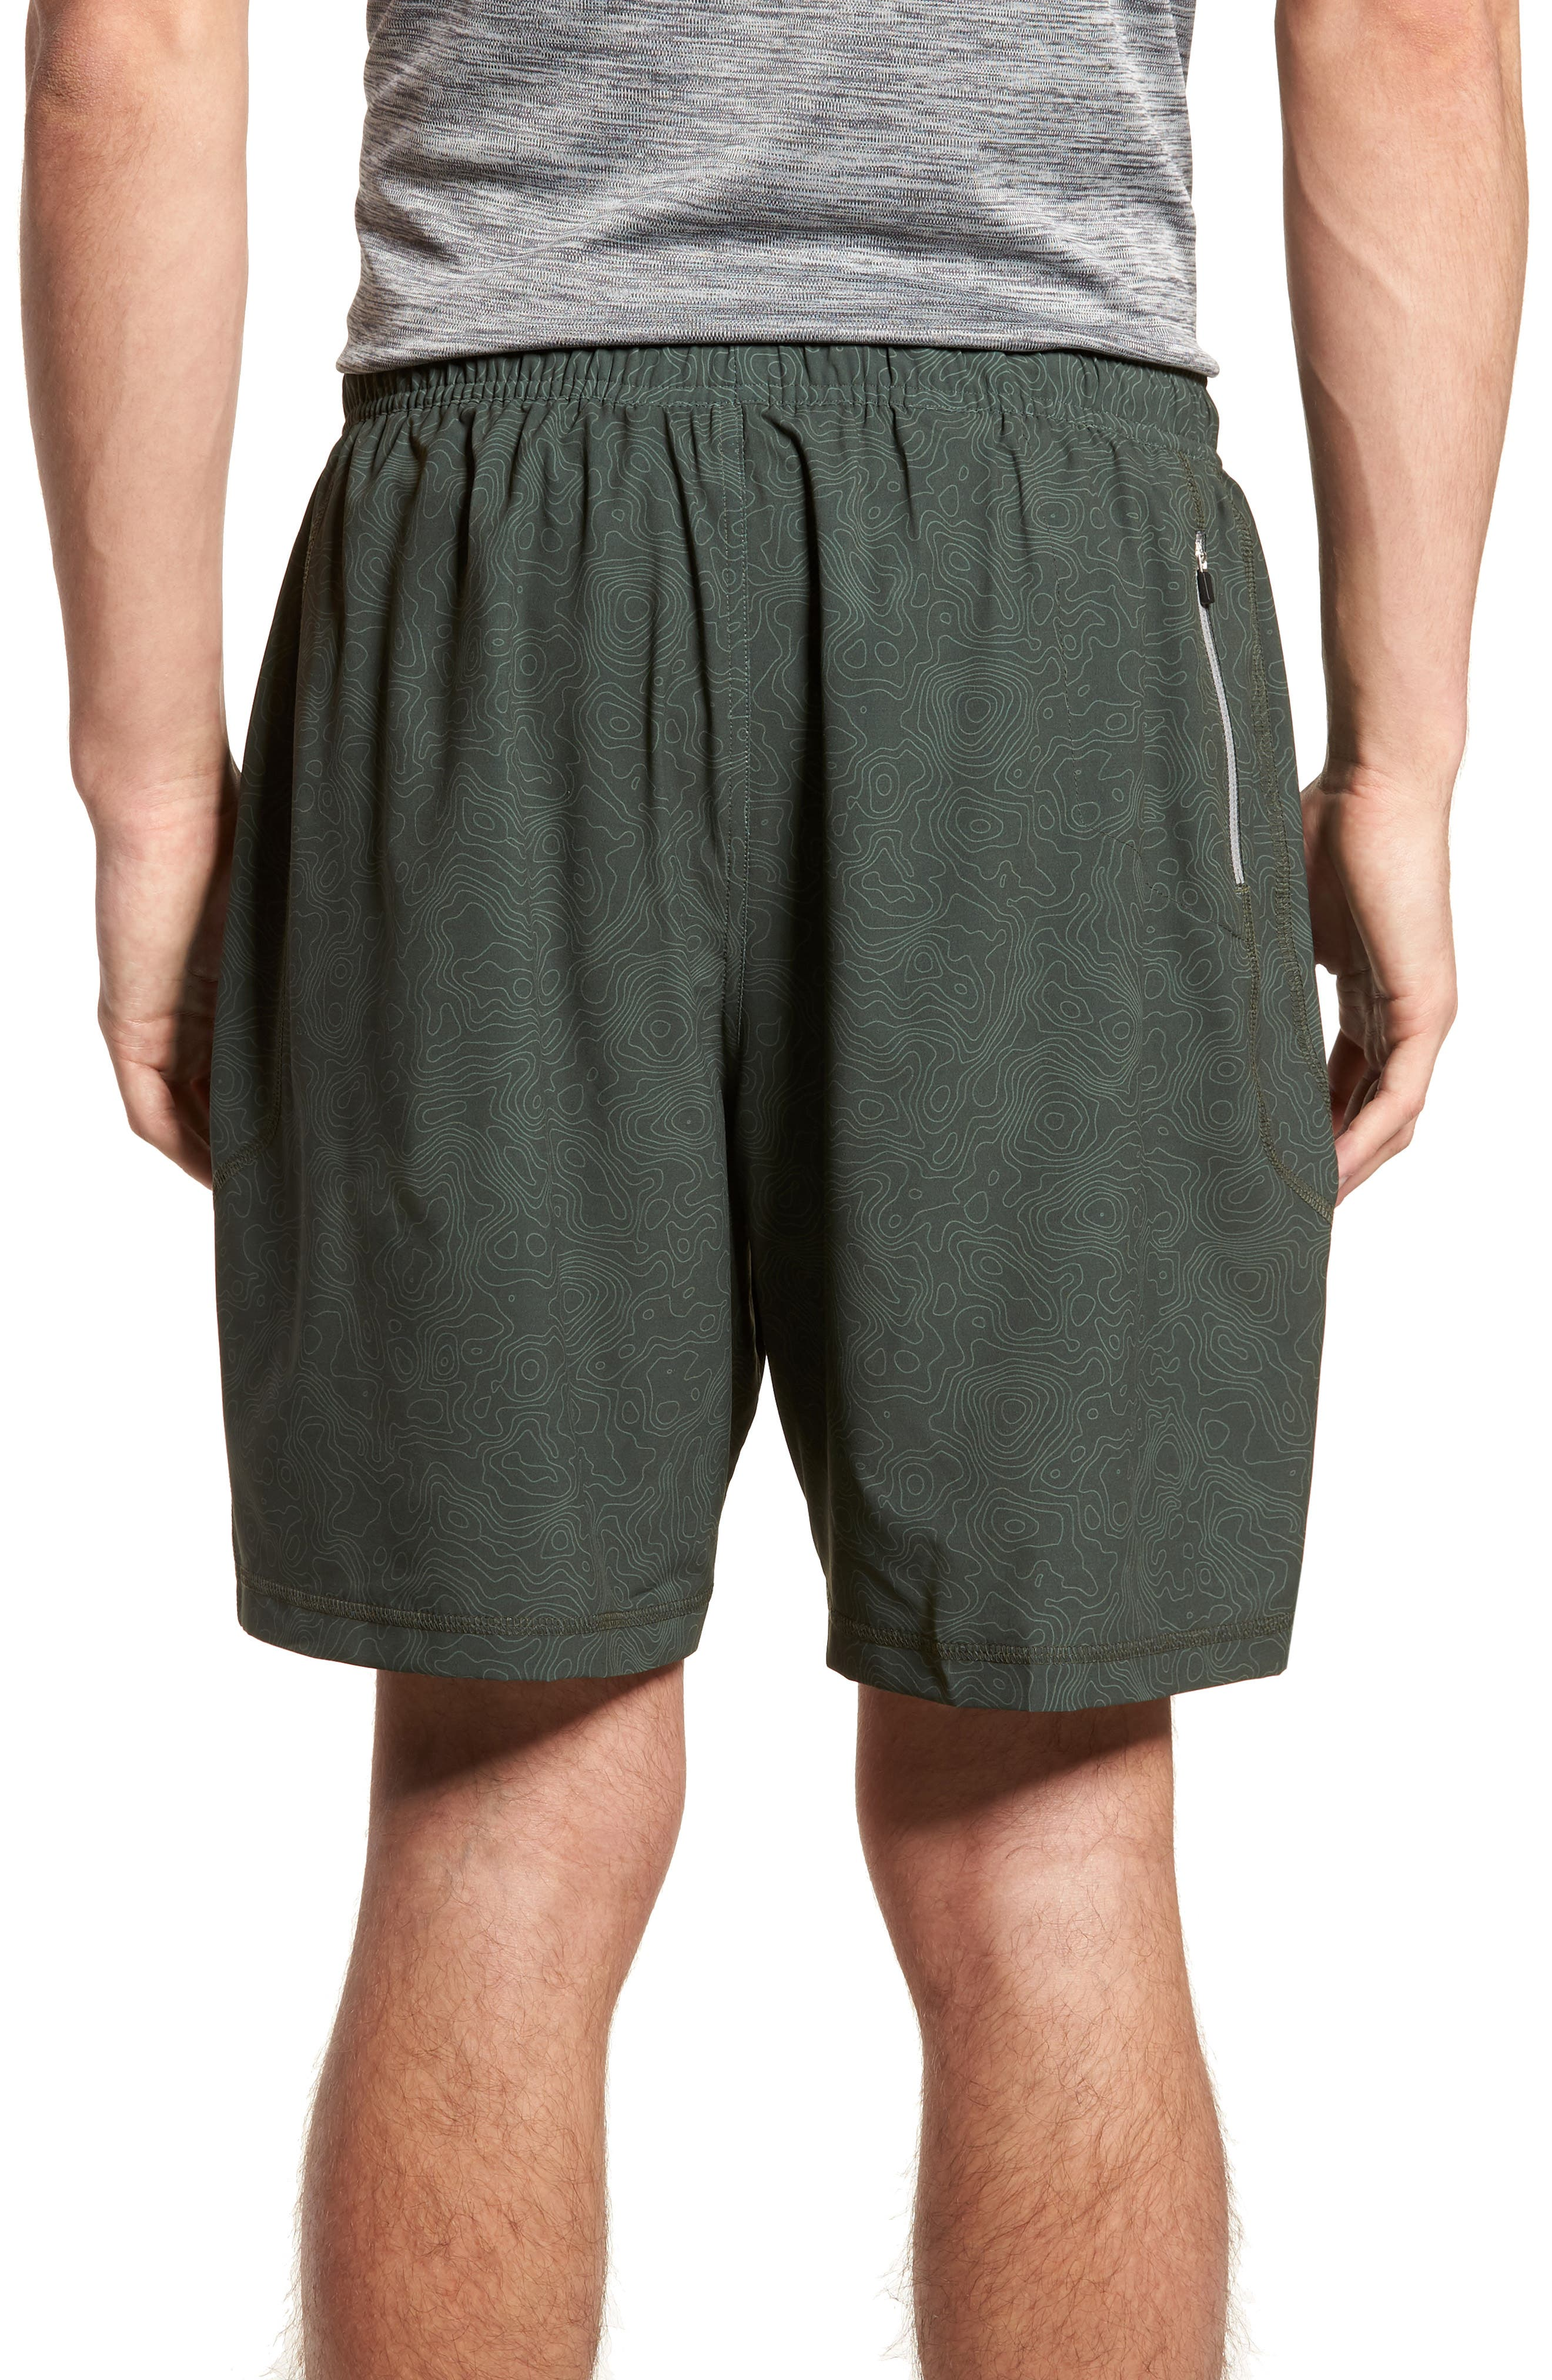 Propulsion Athletic Shorts,                             Alternate thumbnail 2, color,                             Topography